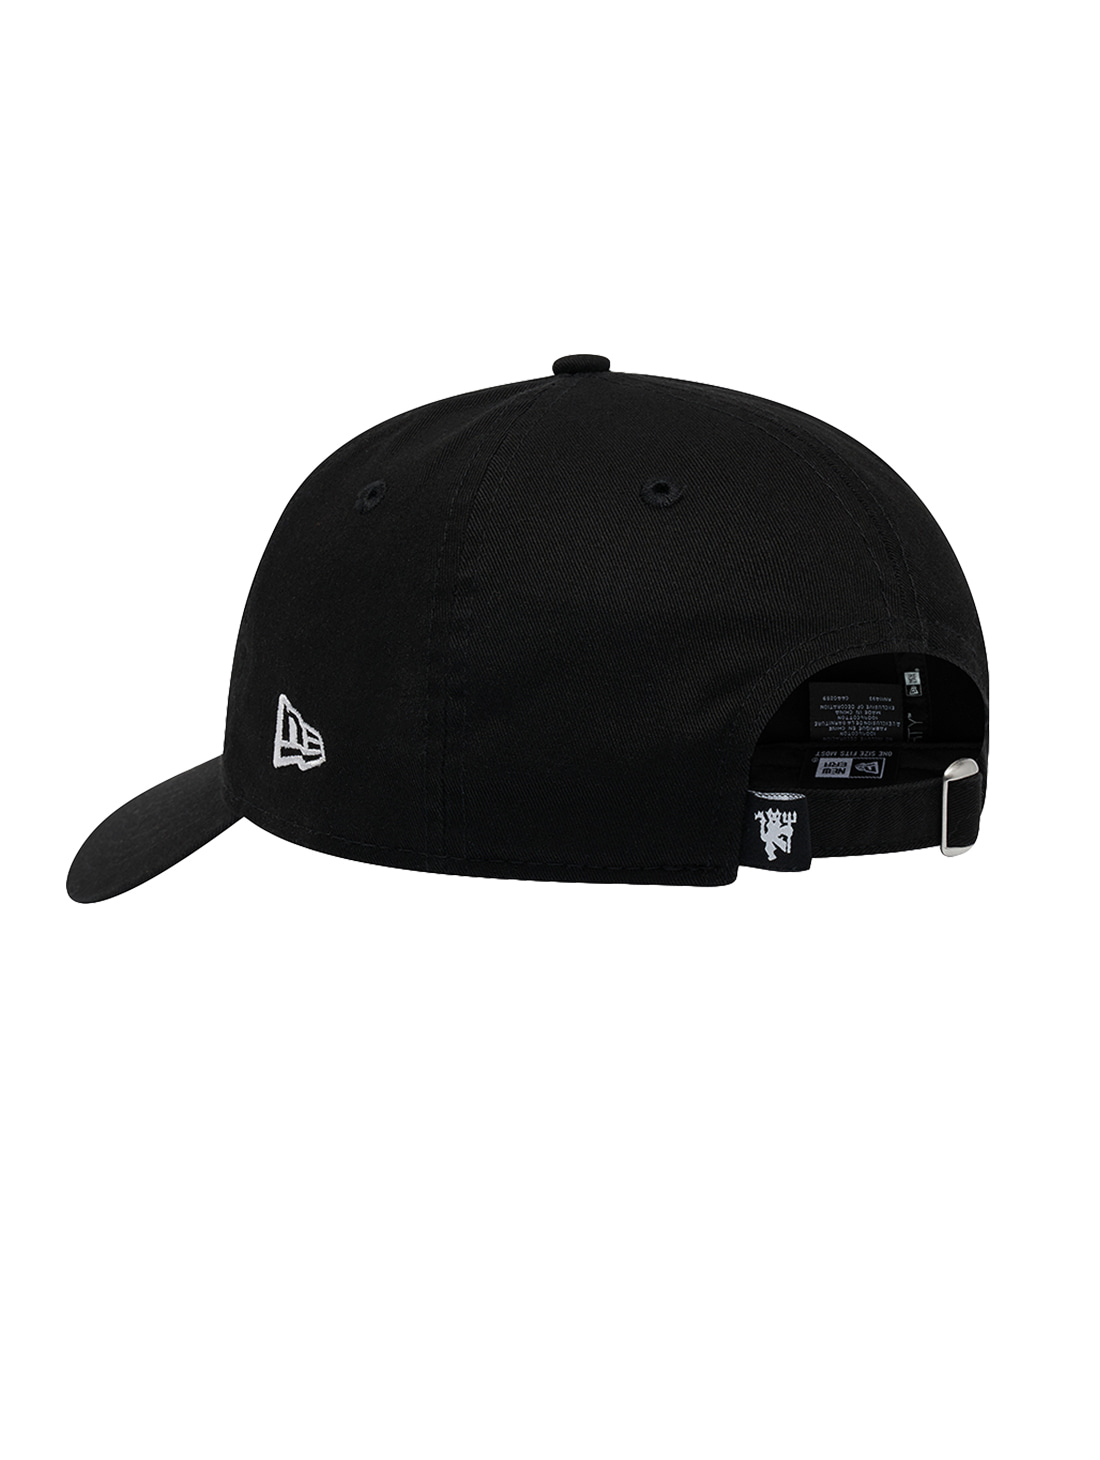 MAN U 940UNST BALL CAP - BLACK